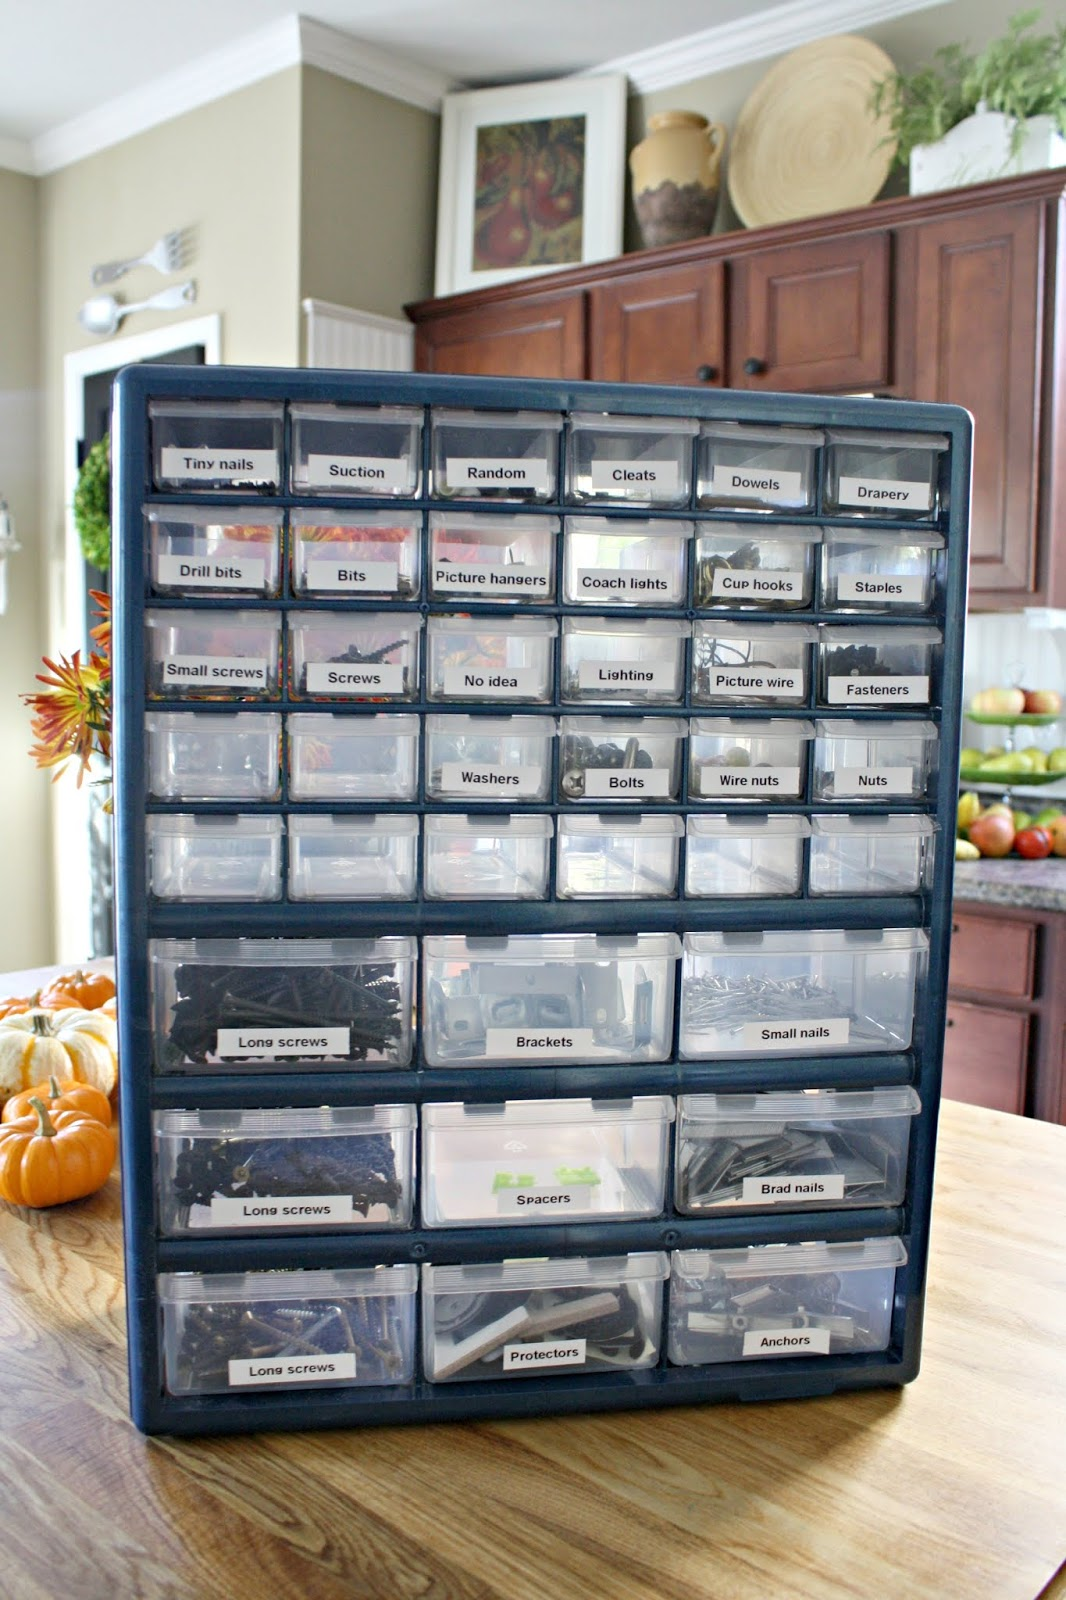 Perfect organization for small hardware like screws and nails